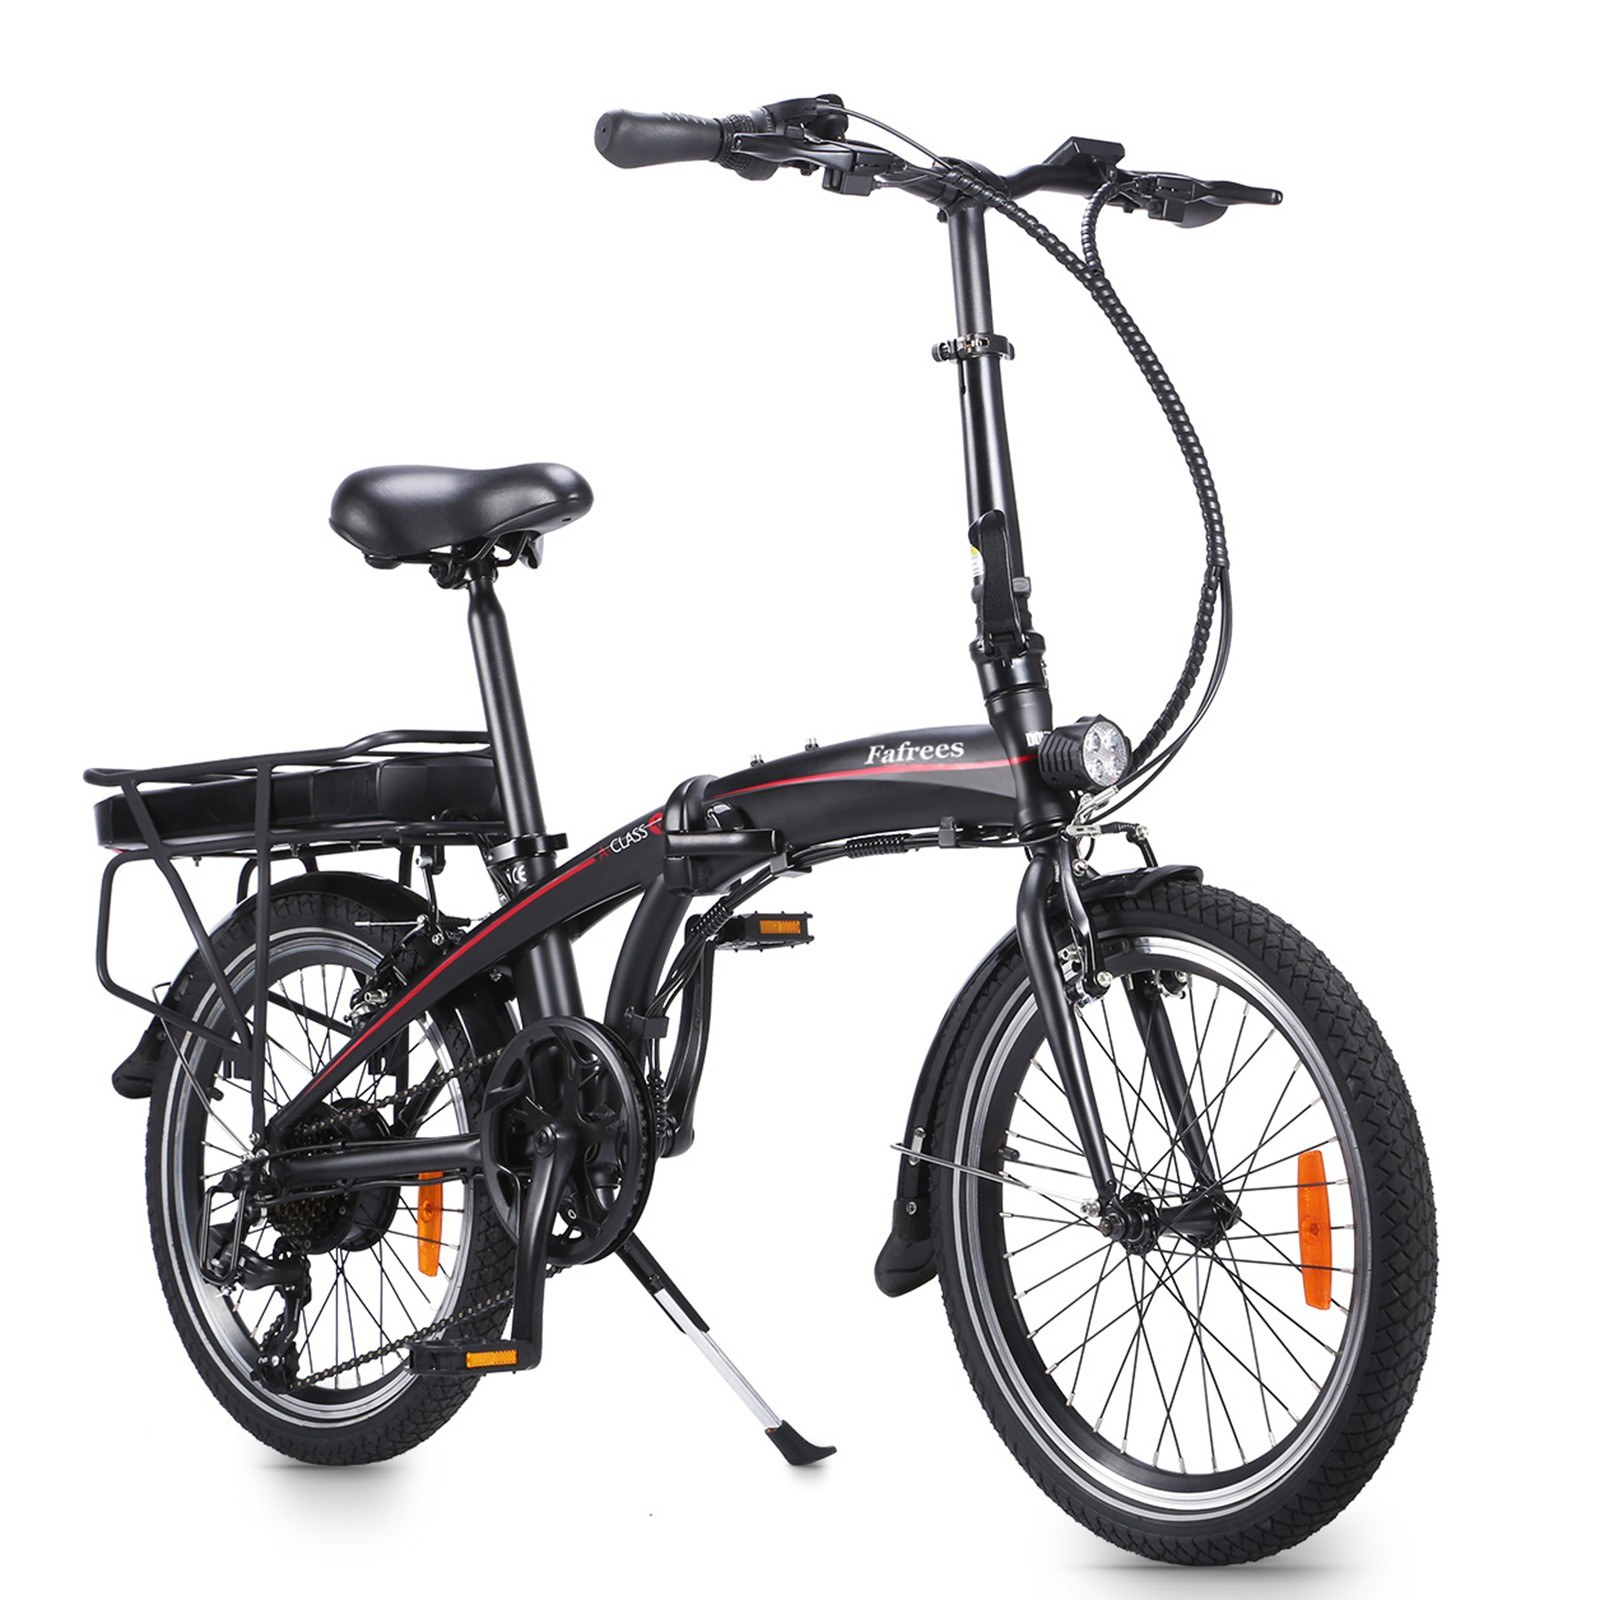 tomtop.com - [EU Warehouse] $508 OFF Fafrees 20F039 20 Inch Folding Electric Bicycle with 10AH Battery 50 – 55km Range, $790.46 (Inclusive of VAT)